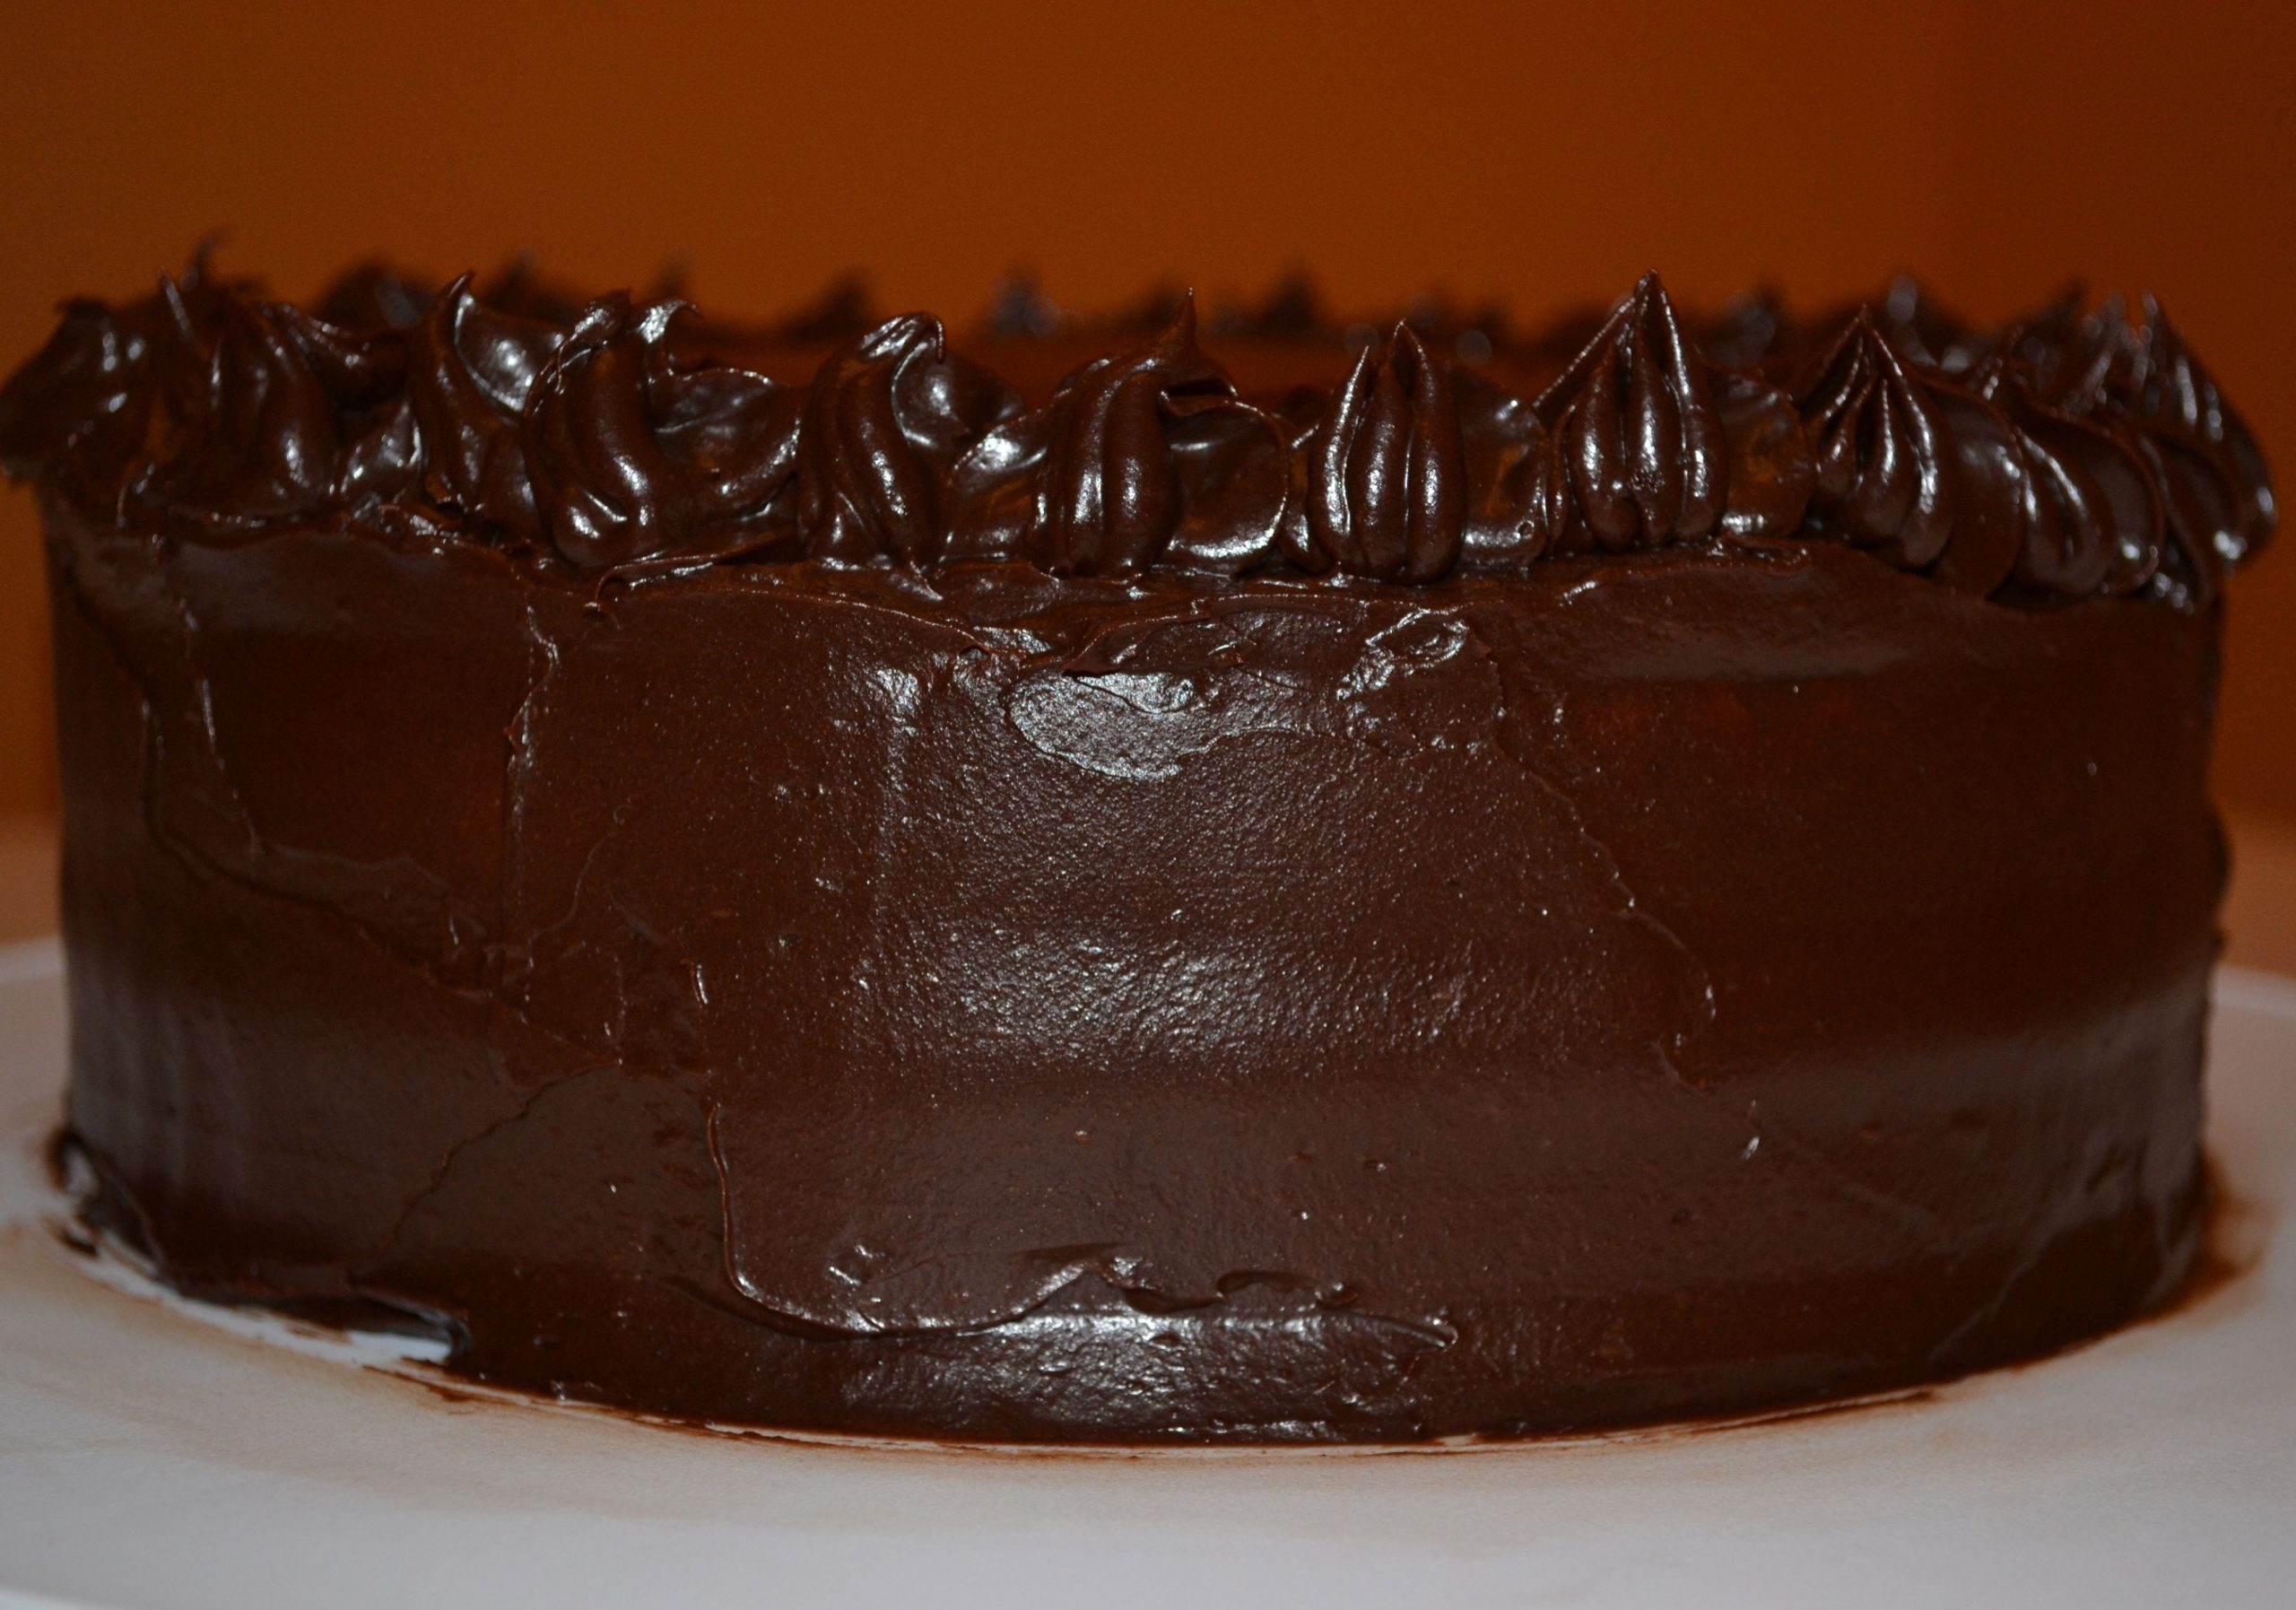 Rich Vanilla Cake with Fudge Frosting | Valerie Baking With Anna Olson